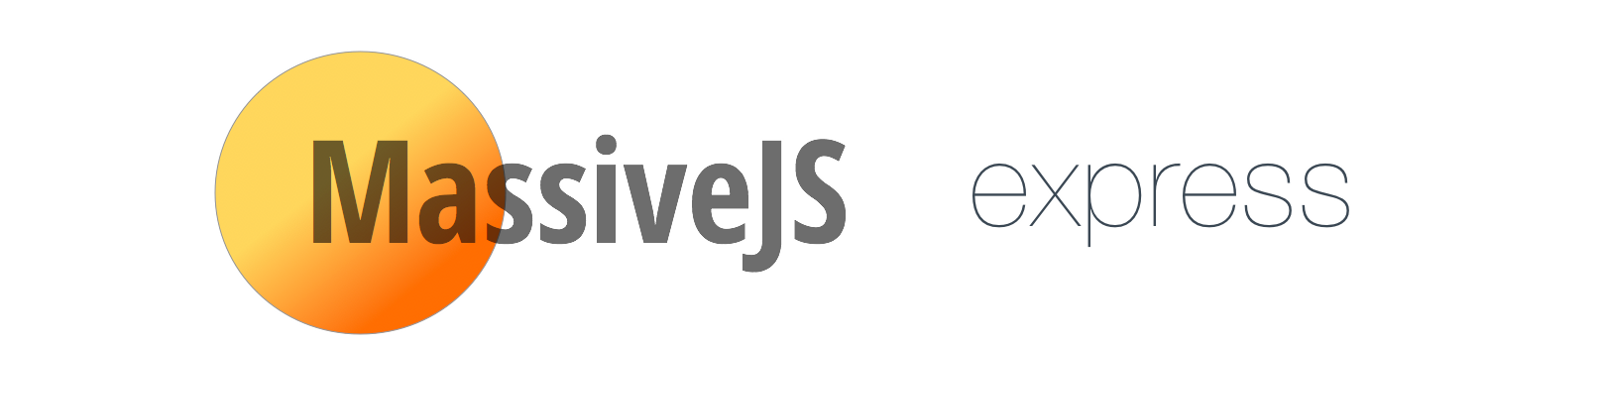 RESTful api with MassiveJS and express